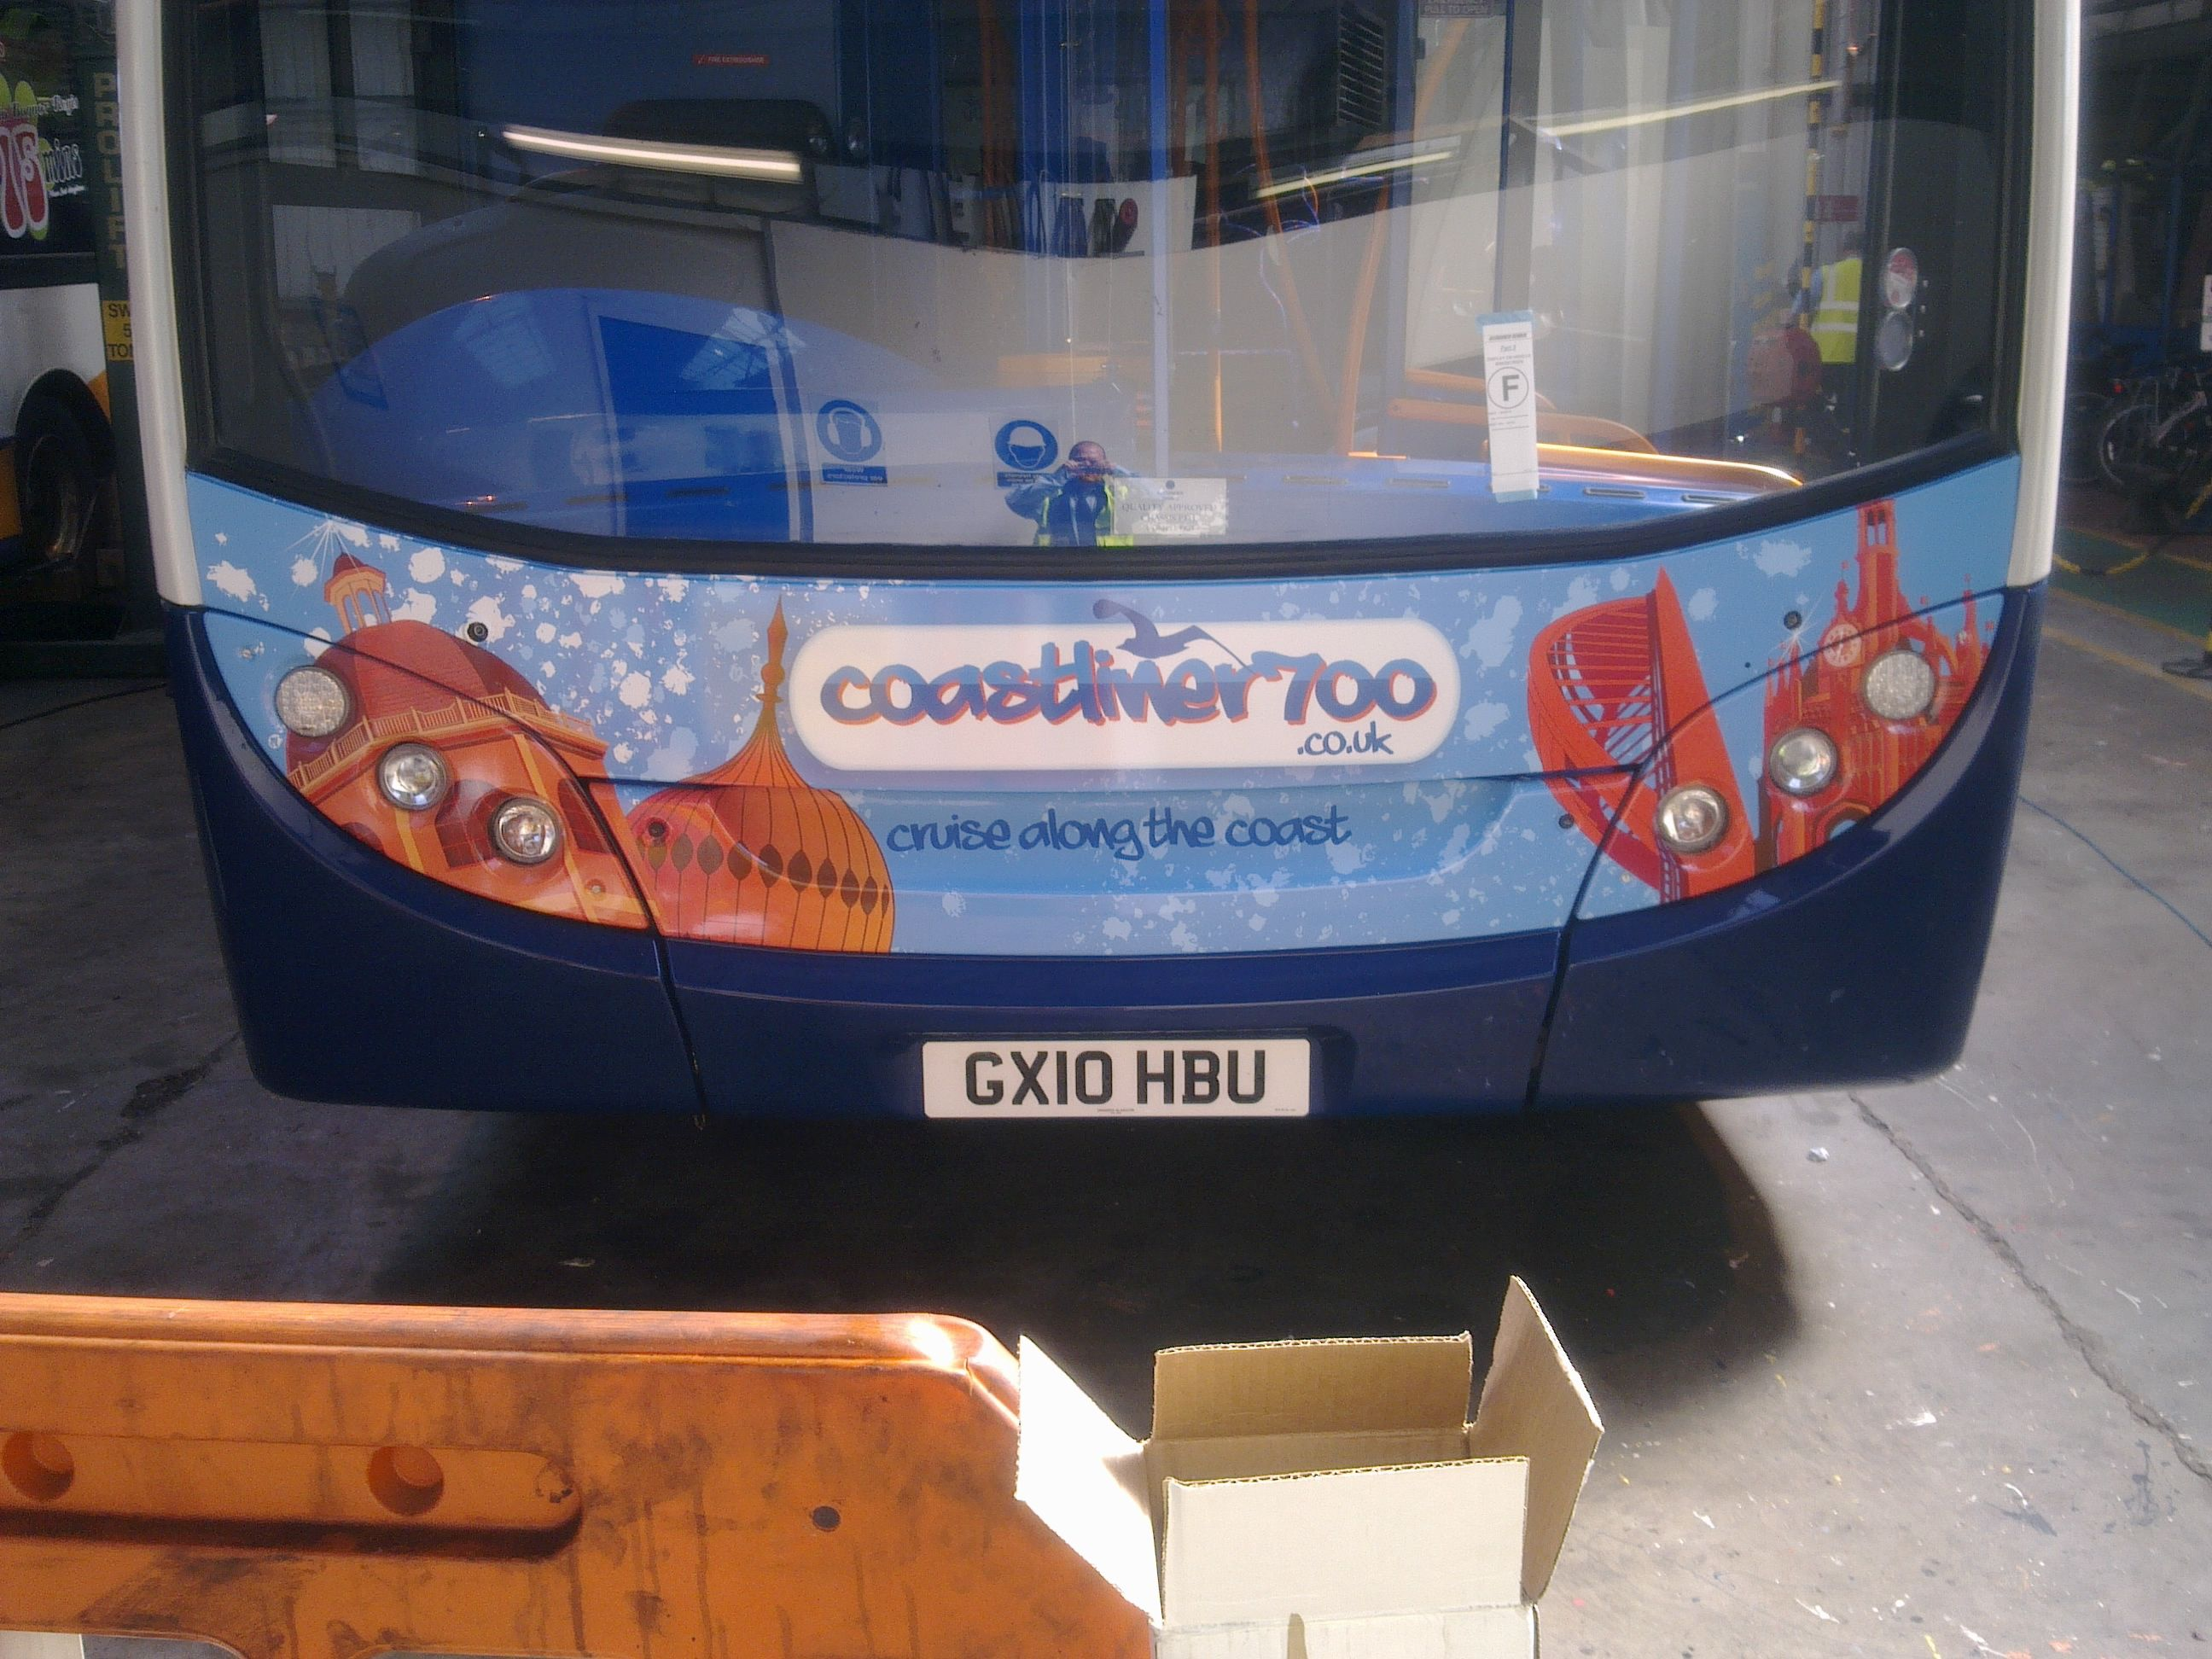 Front Of The Coastliner 700 Bus Livery